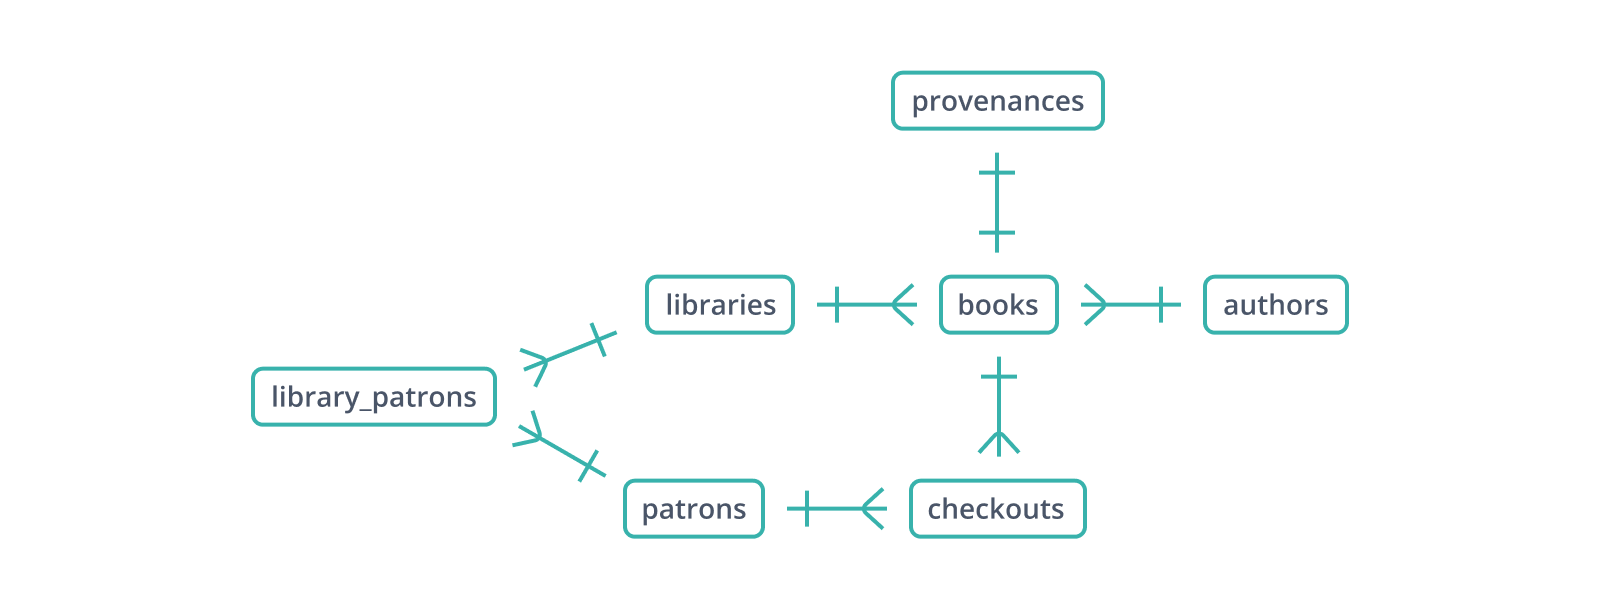 Adding junction tables to the model allows the relationships between patrons and books, and patrons and libraries, to be fully represented.